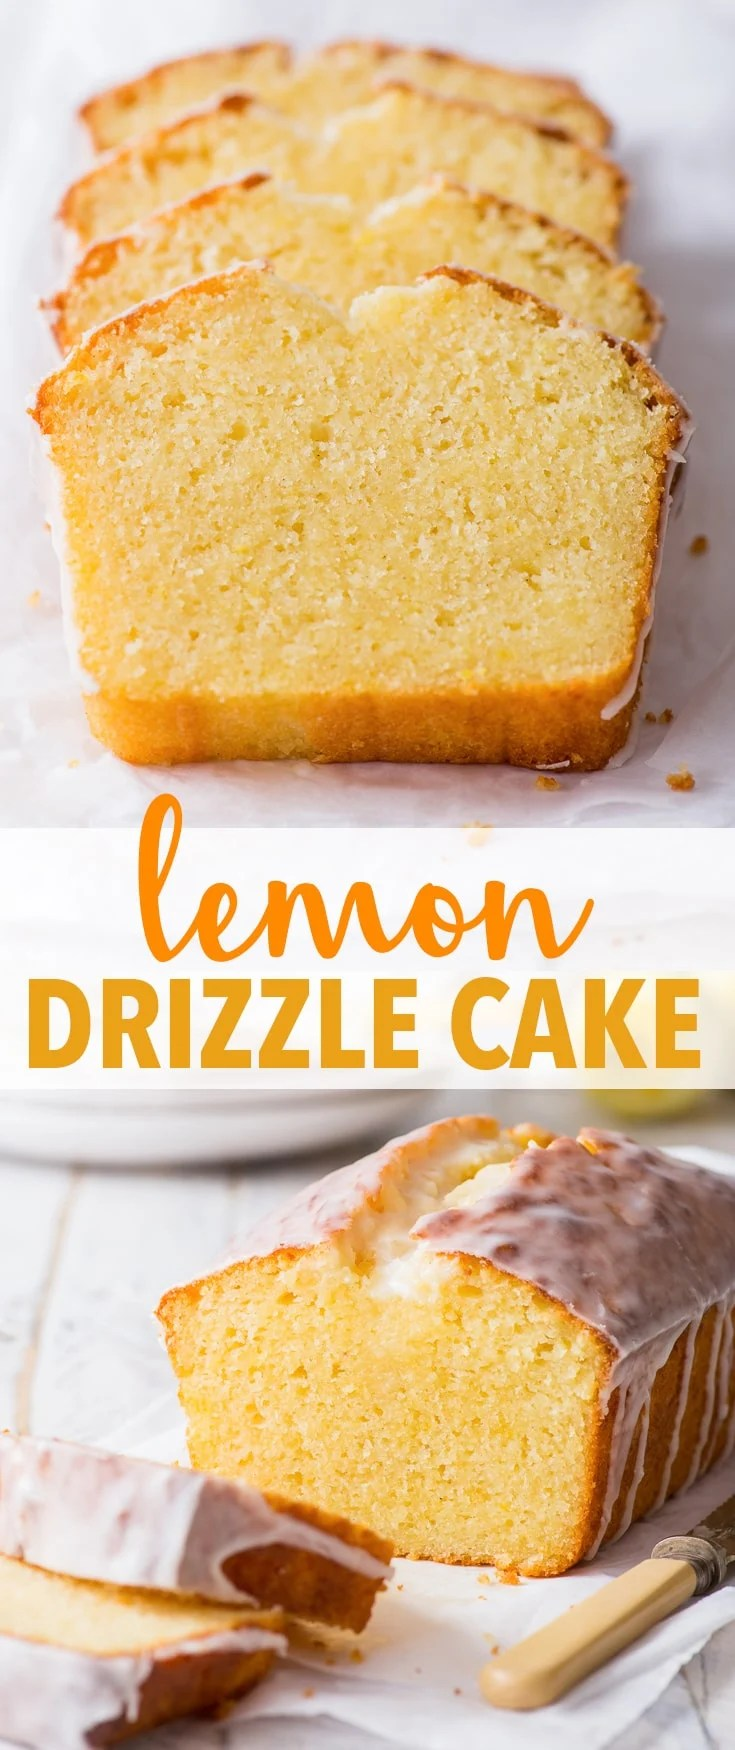 The Best Gluten Free Lemon Drizzle Cake The Loopy Whisk